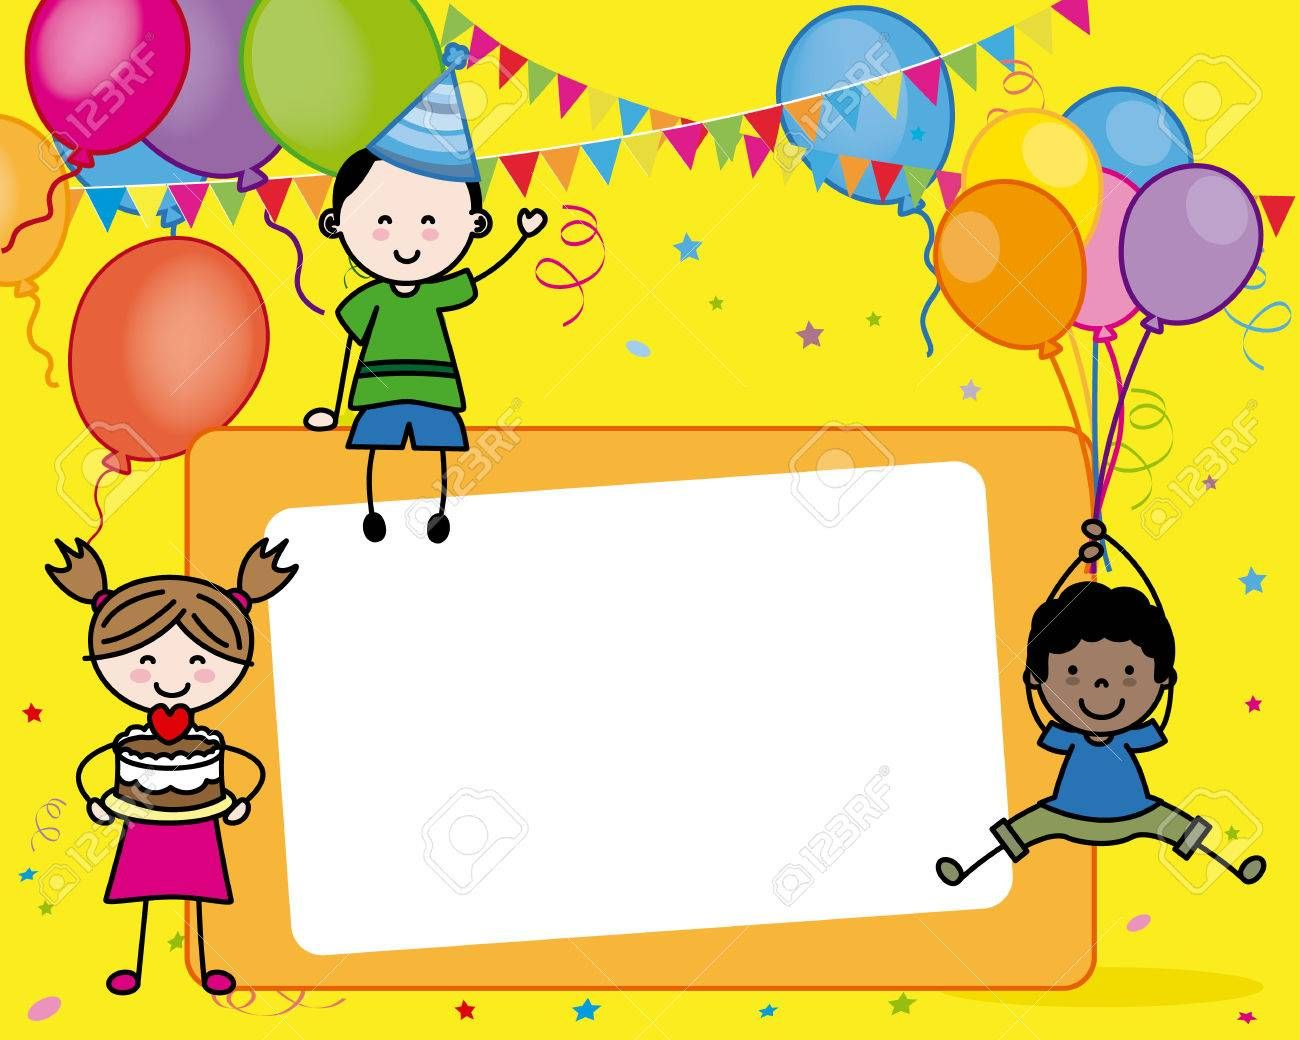 Birthday Card Children With Space For Text Royalty On Happy Birthday Card Template Kids Drawing Chi Birthday Card Template Birthday Cards Birthday Wishes Cards